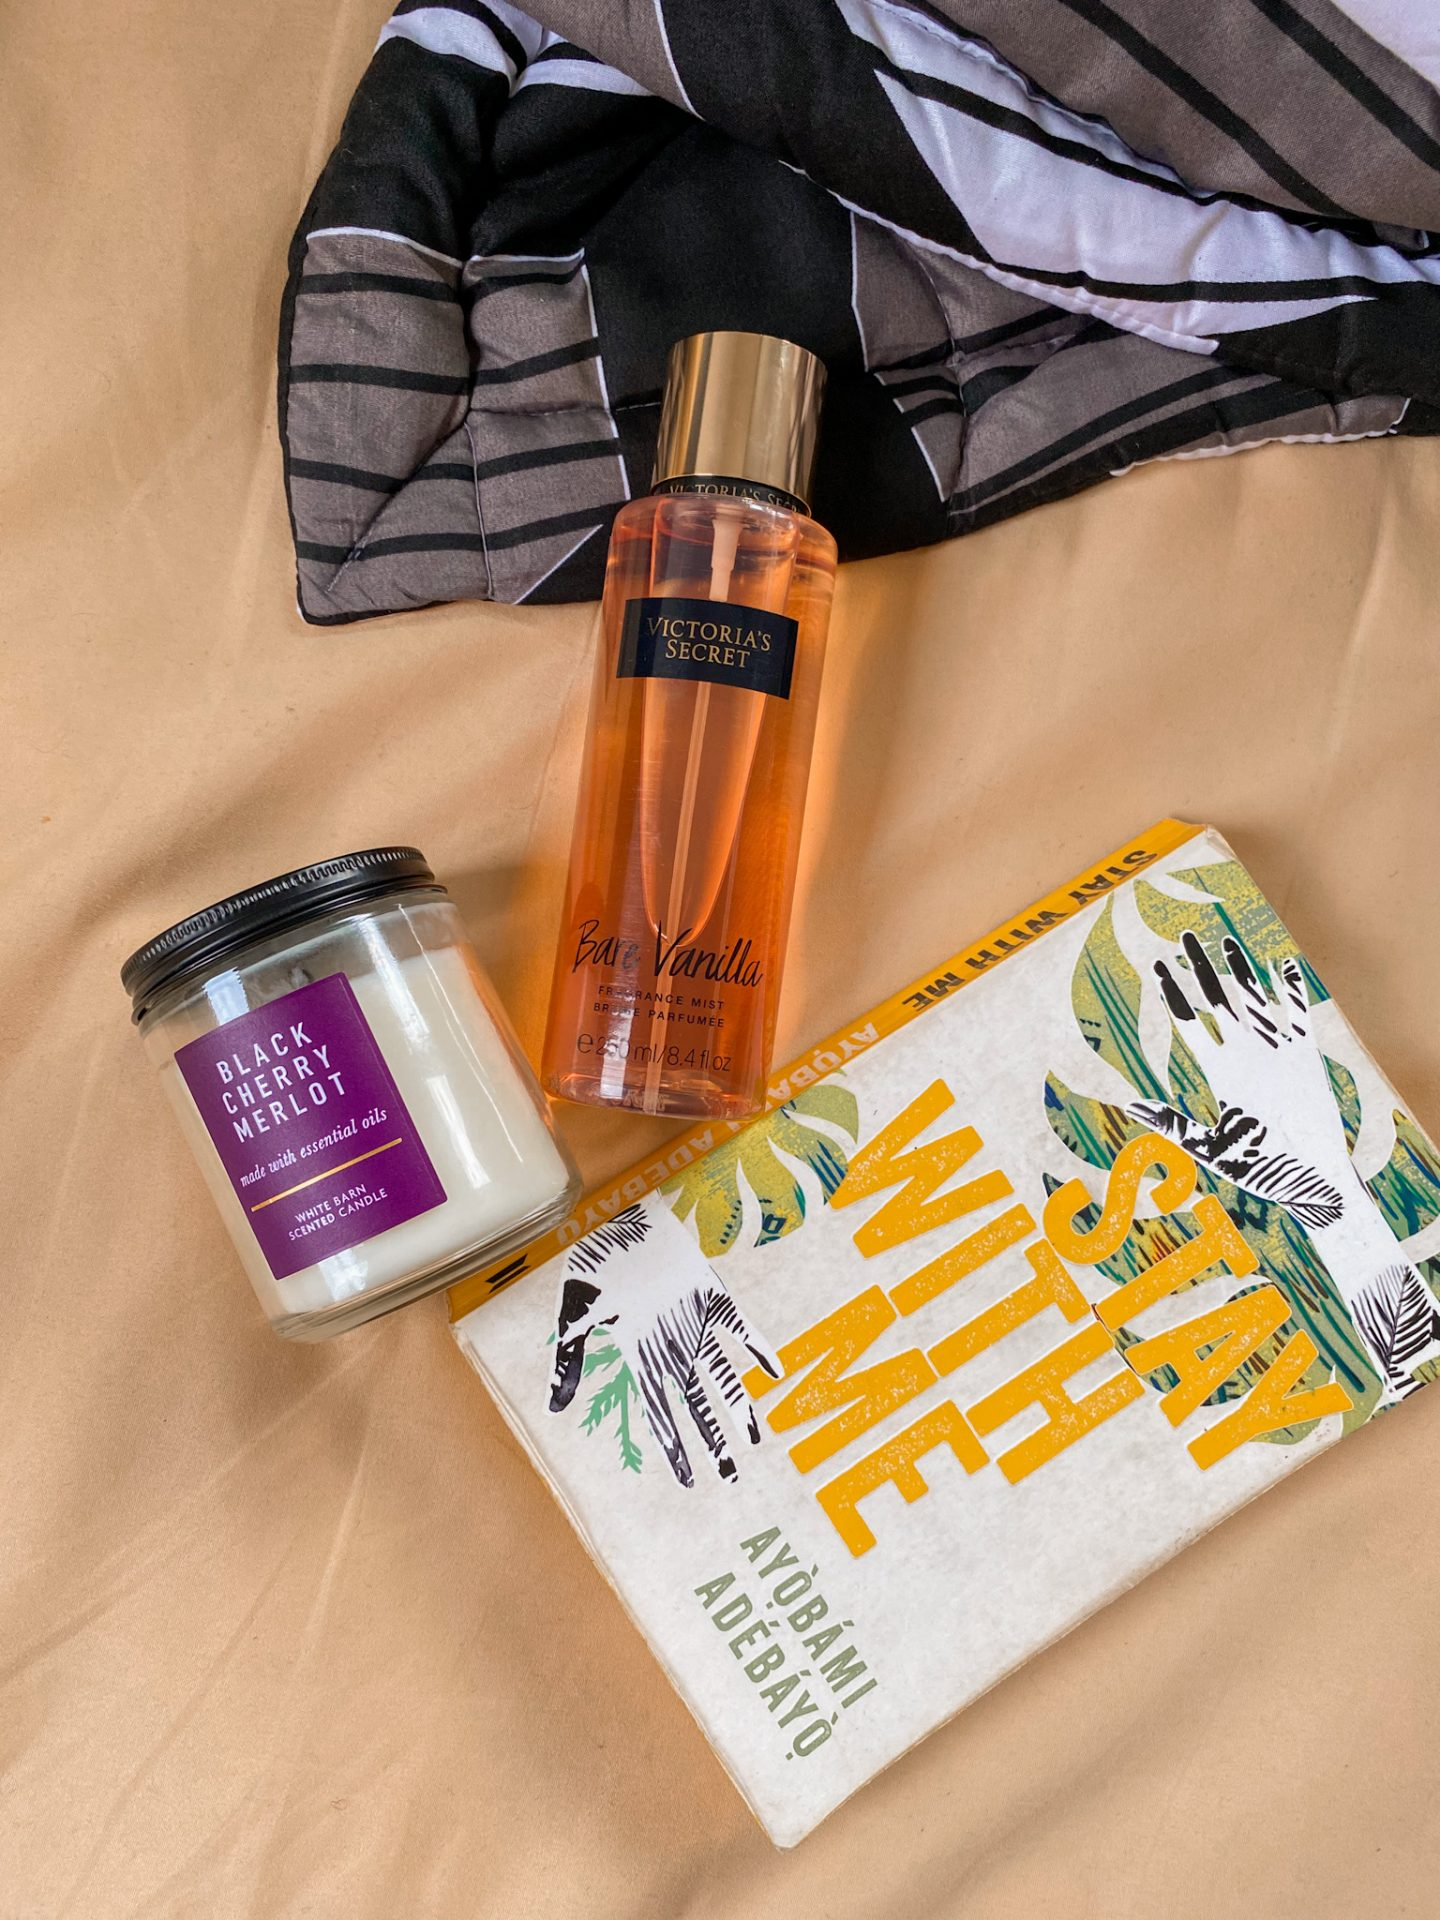 valerie egbuniwe current favorites 2020, stay with me novel, bare vanilla body spray